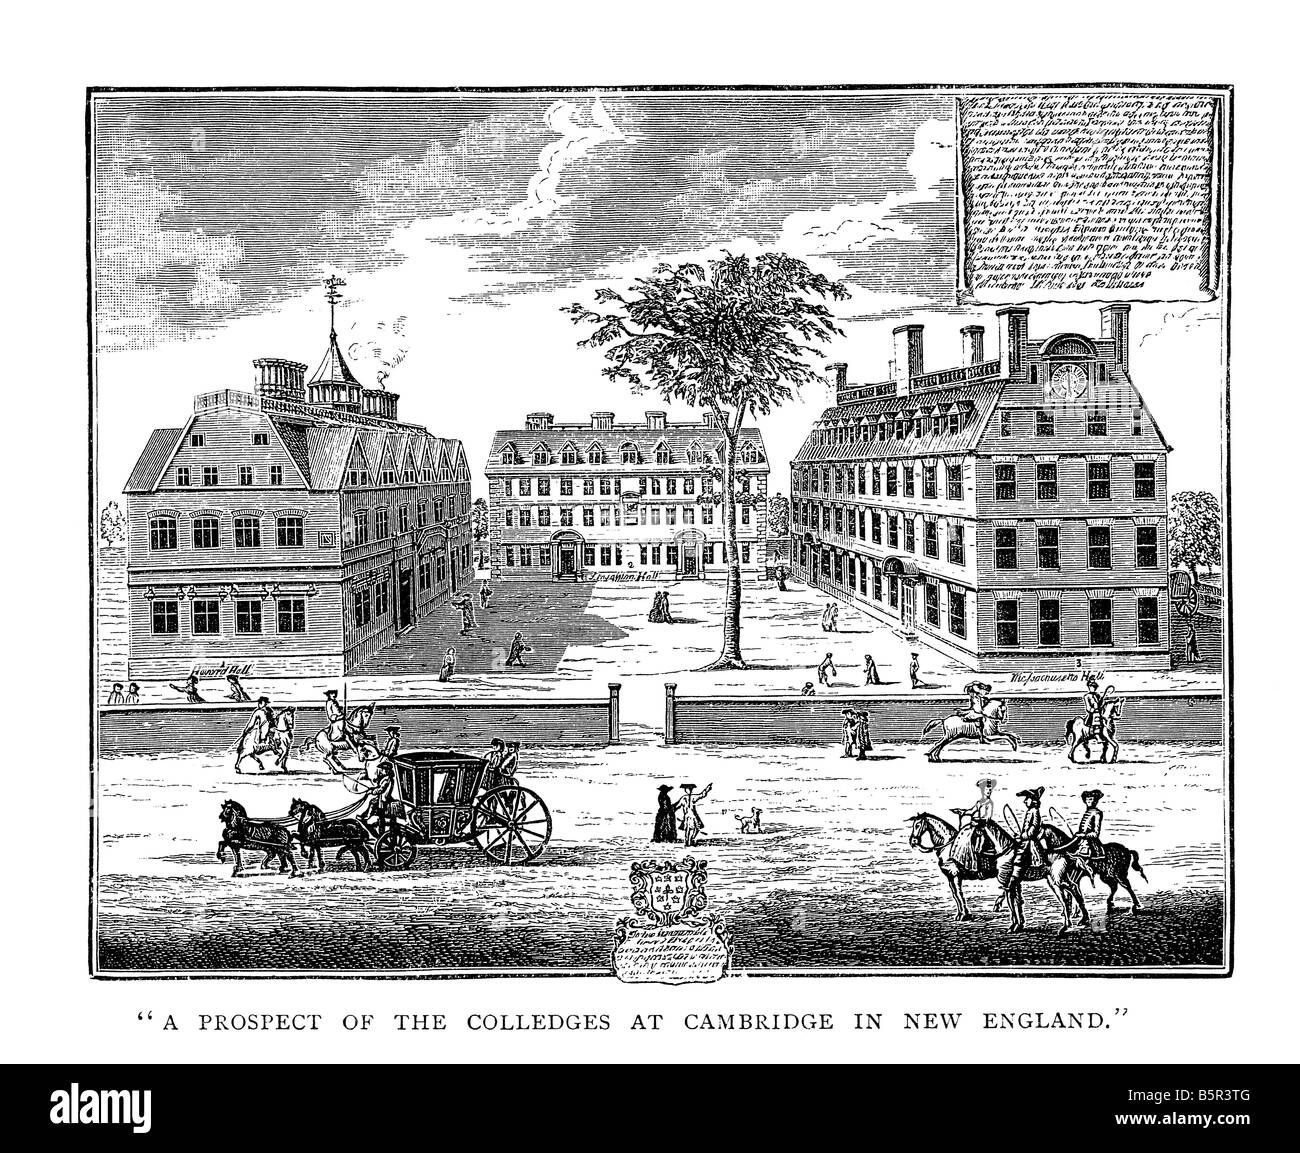 Colleges at Cambridge in New England c.1739 - Stock Image